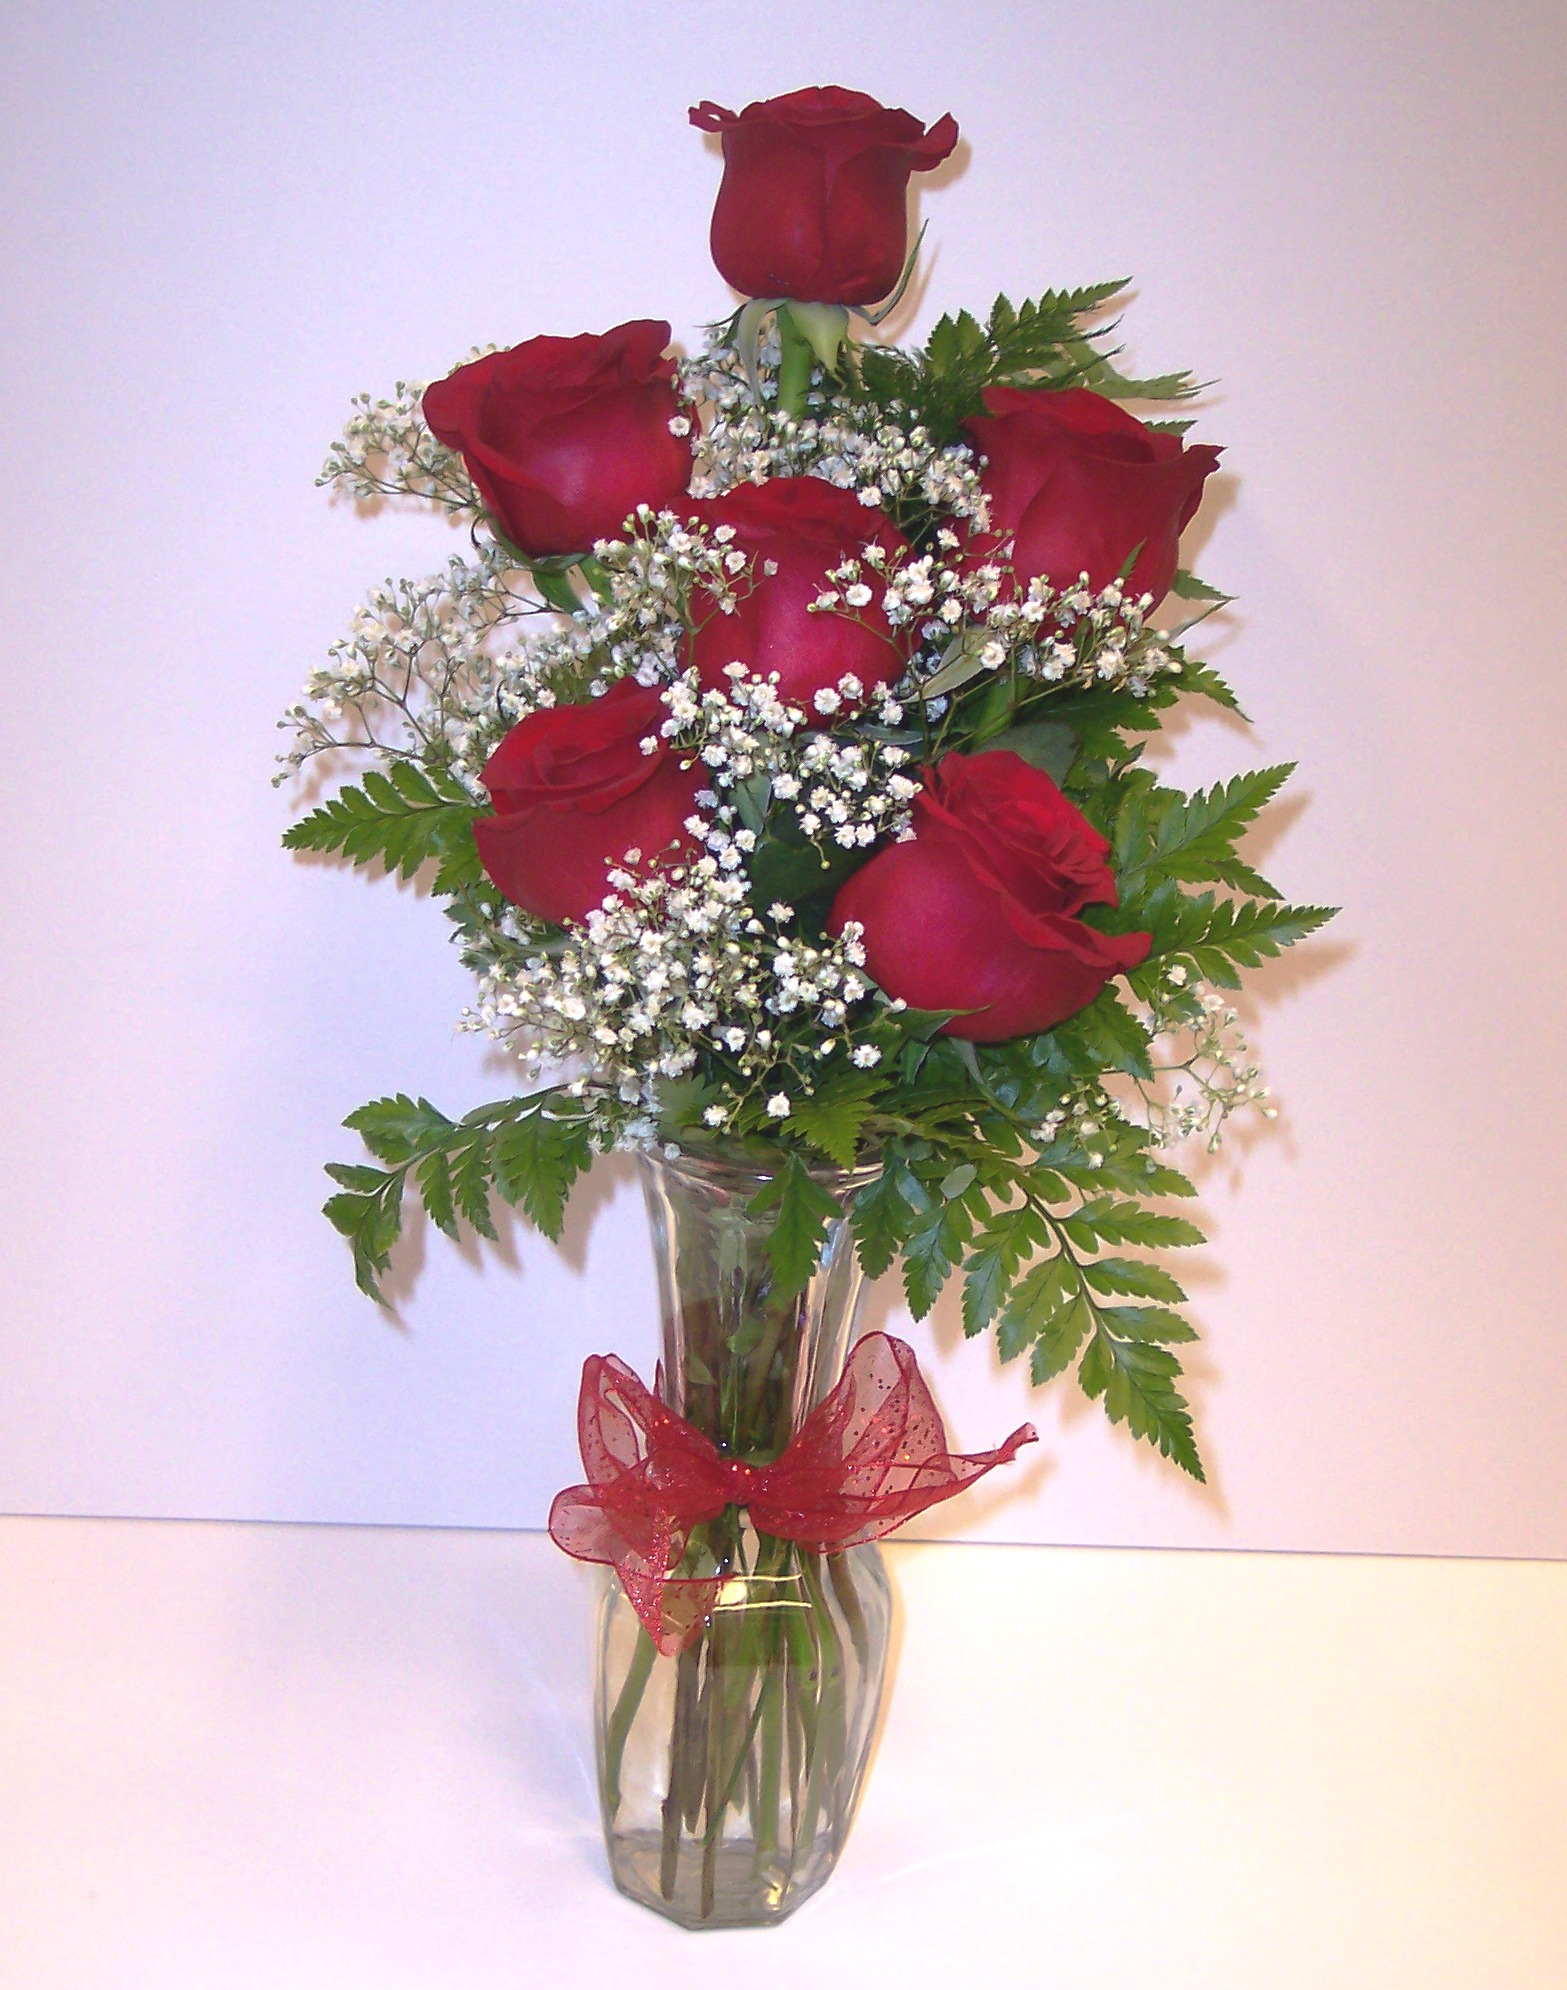 Red Roses - Bud Vases & Bouquets